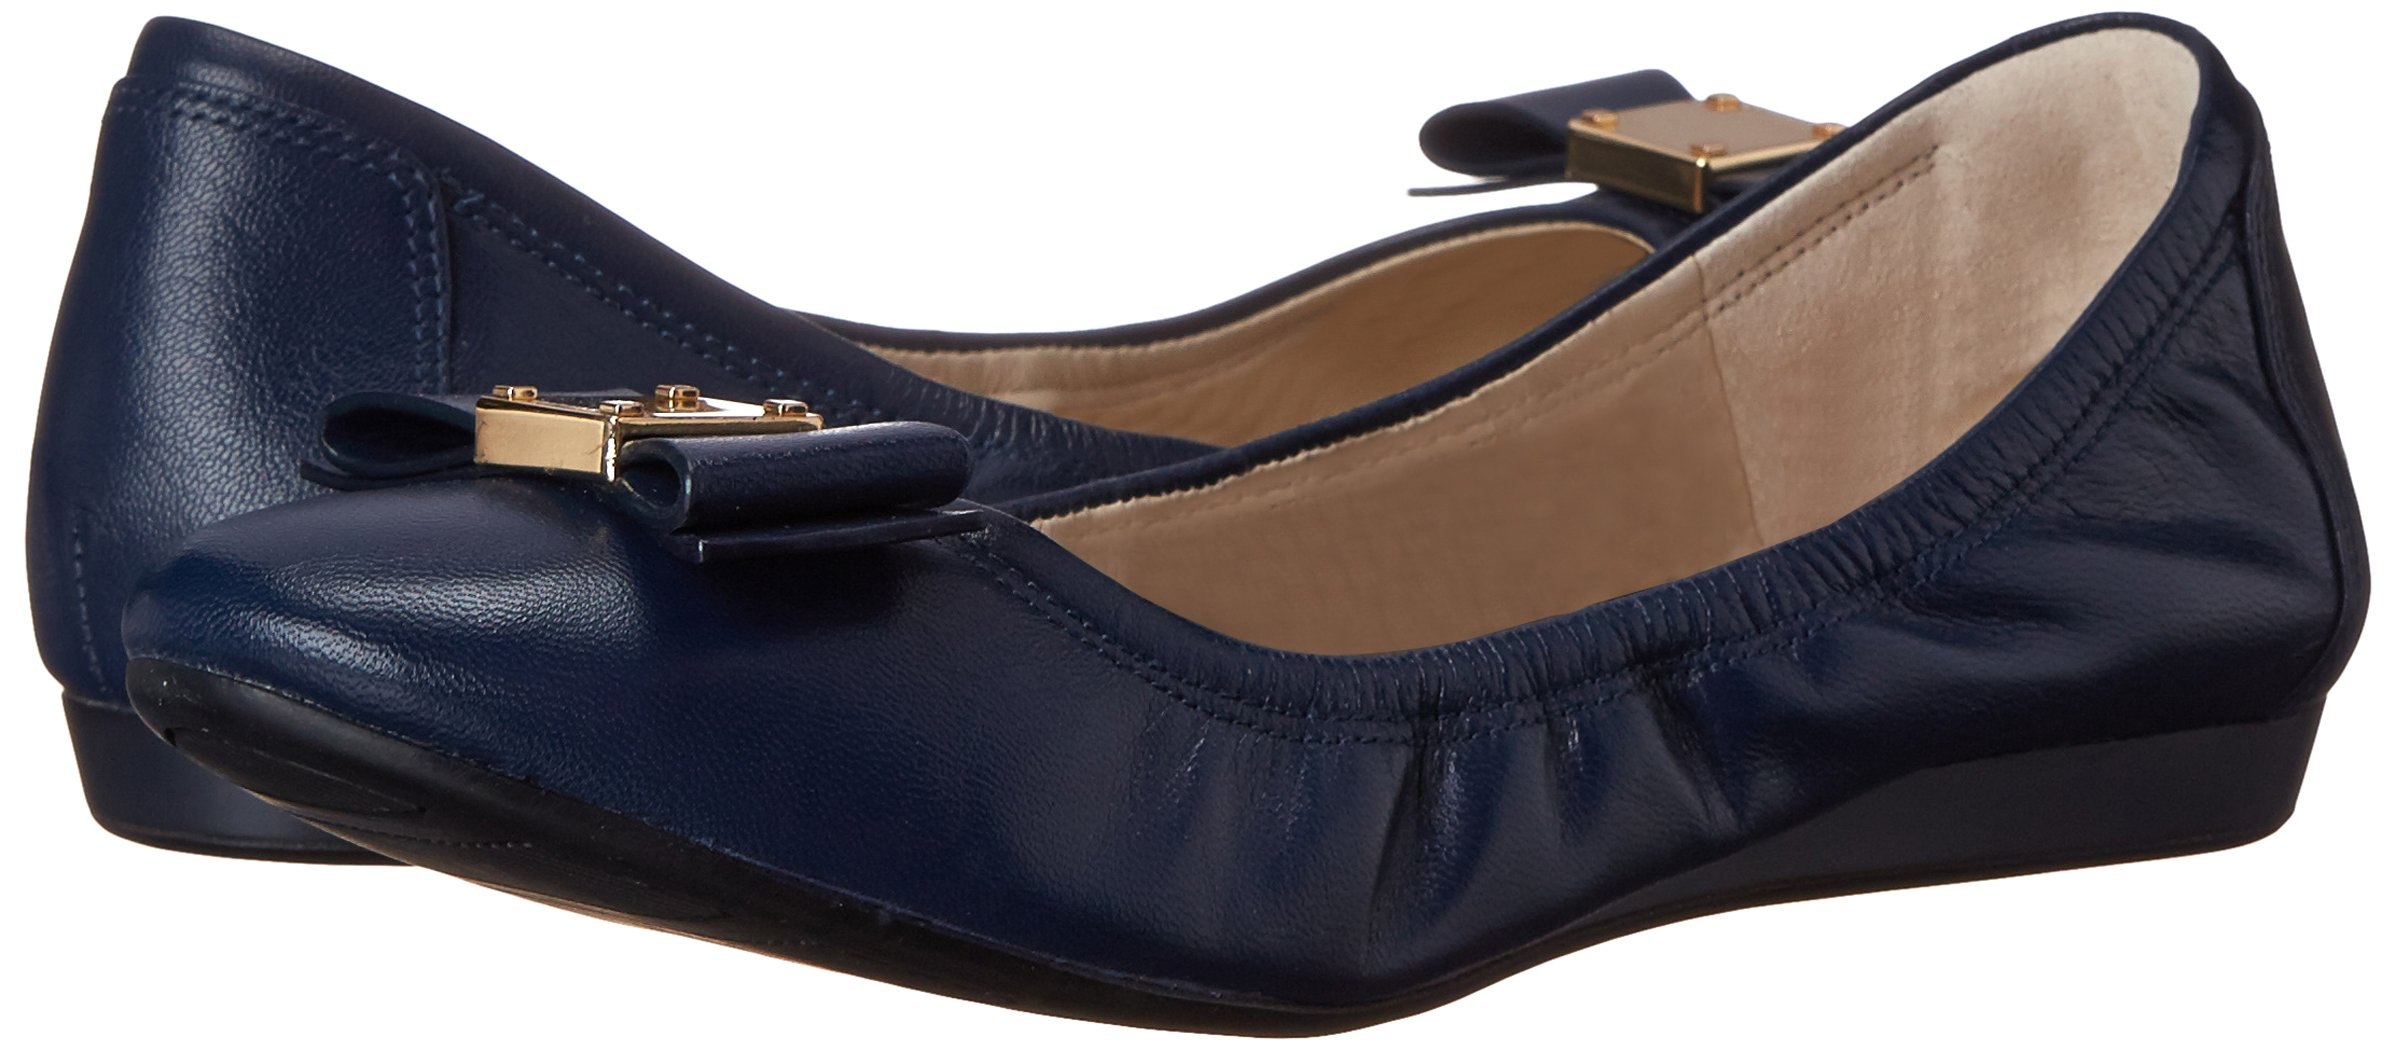 Cole Haan Women's Tali Bow Ballet Flat, Blazer Blue, 8 B US by Cole Haan (Image #6)